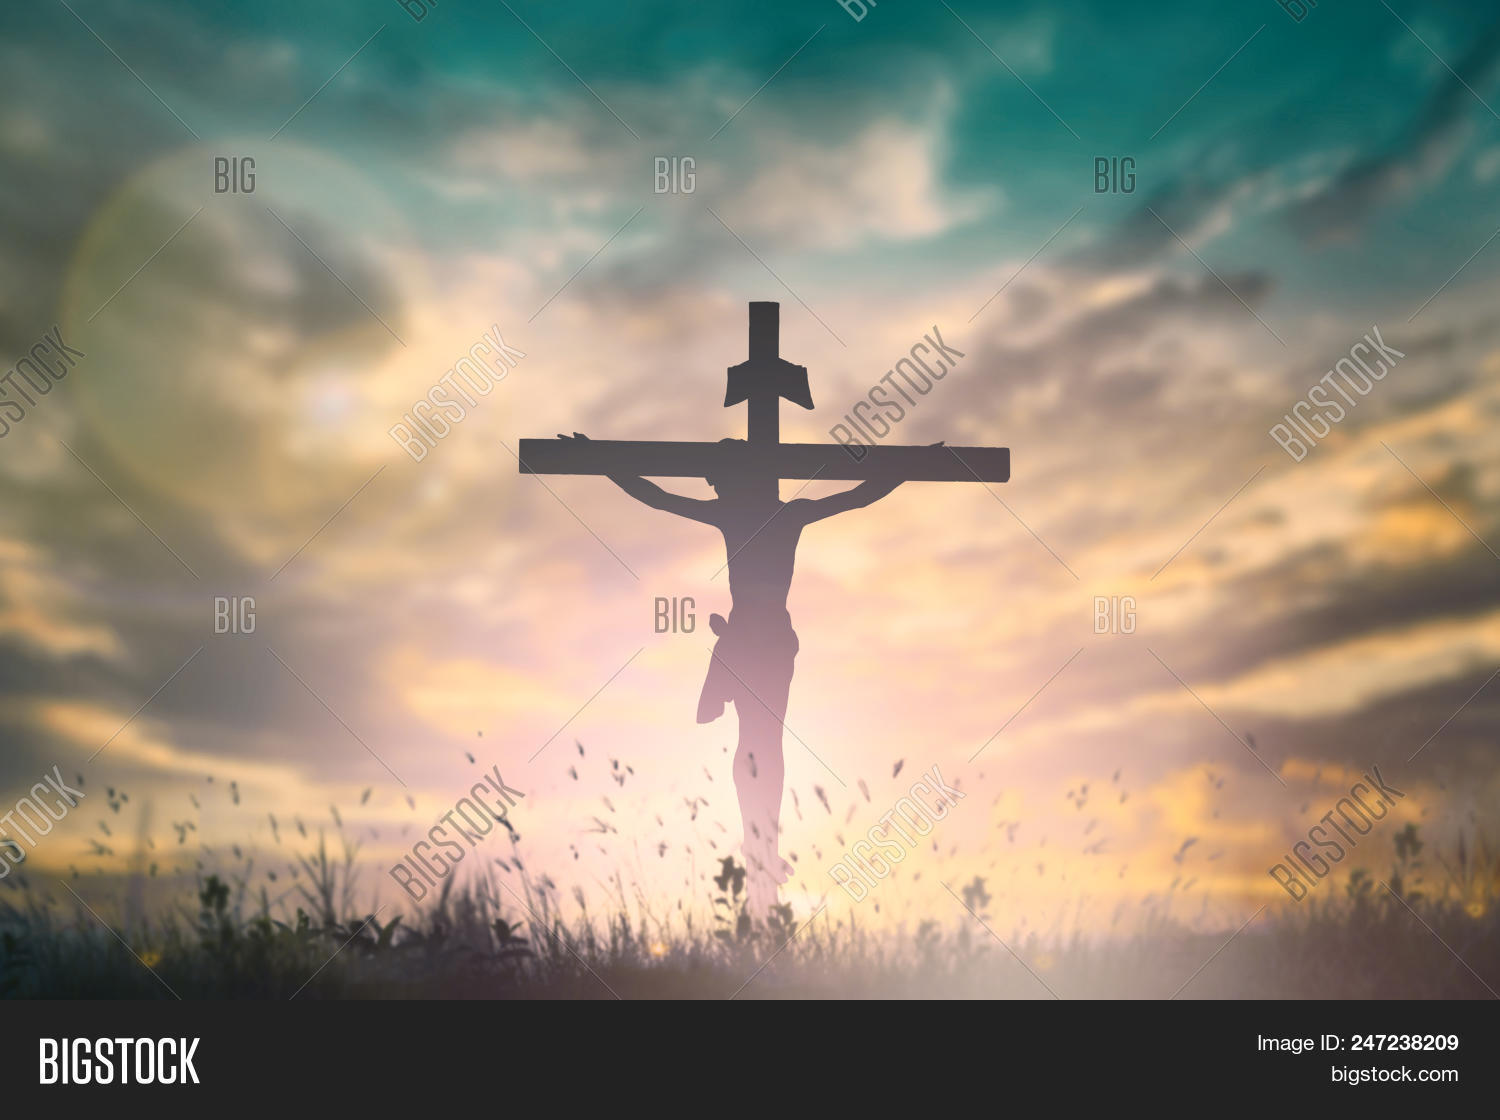 Silhouette Jesus Cross Image Photo Free Trial Bigstock